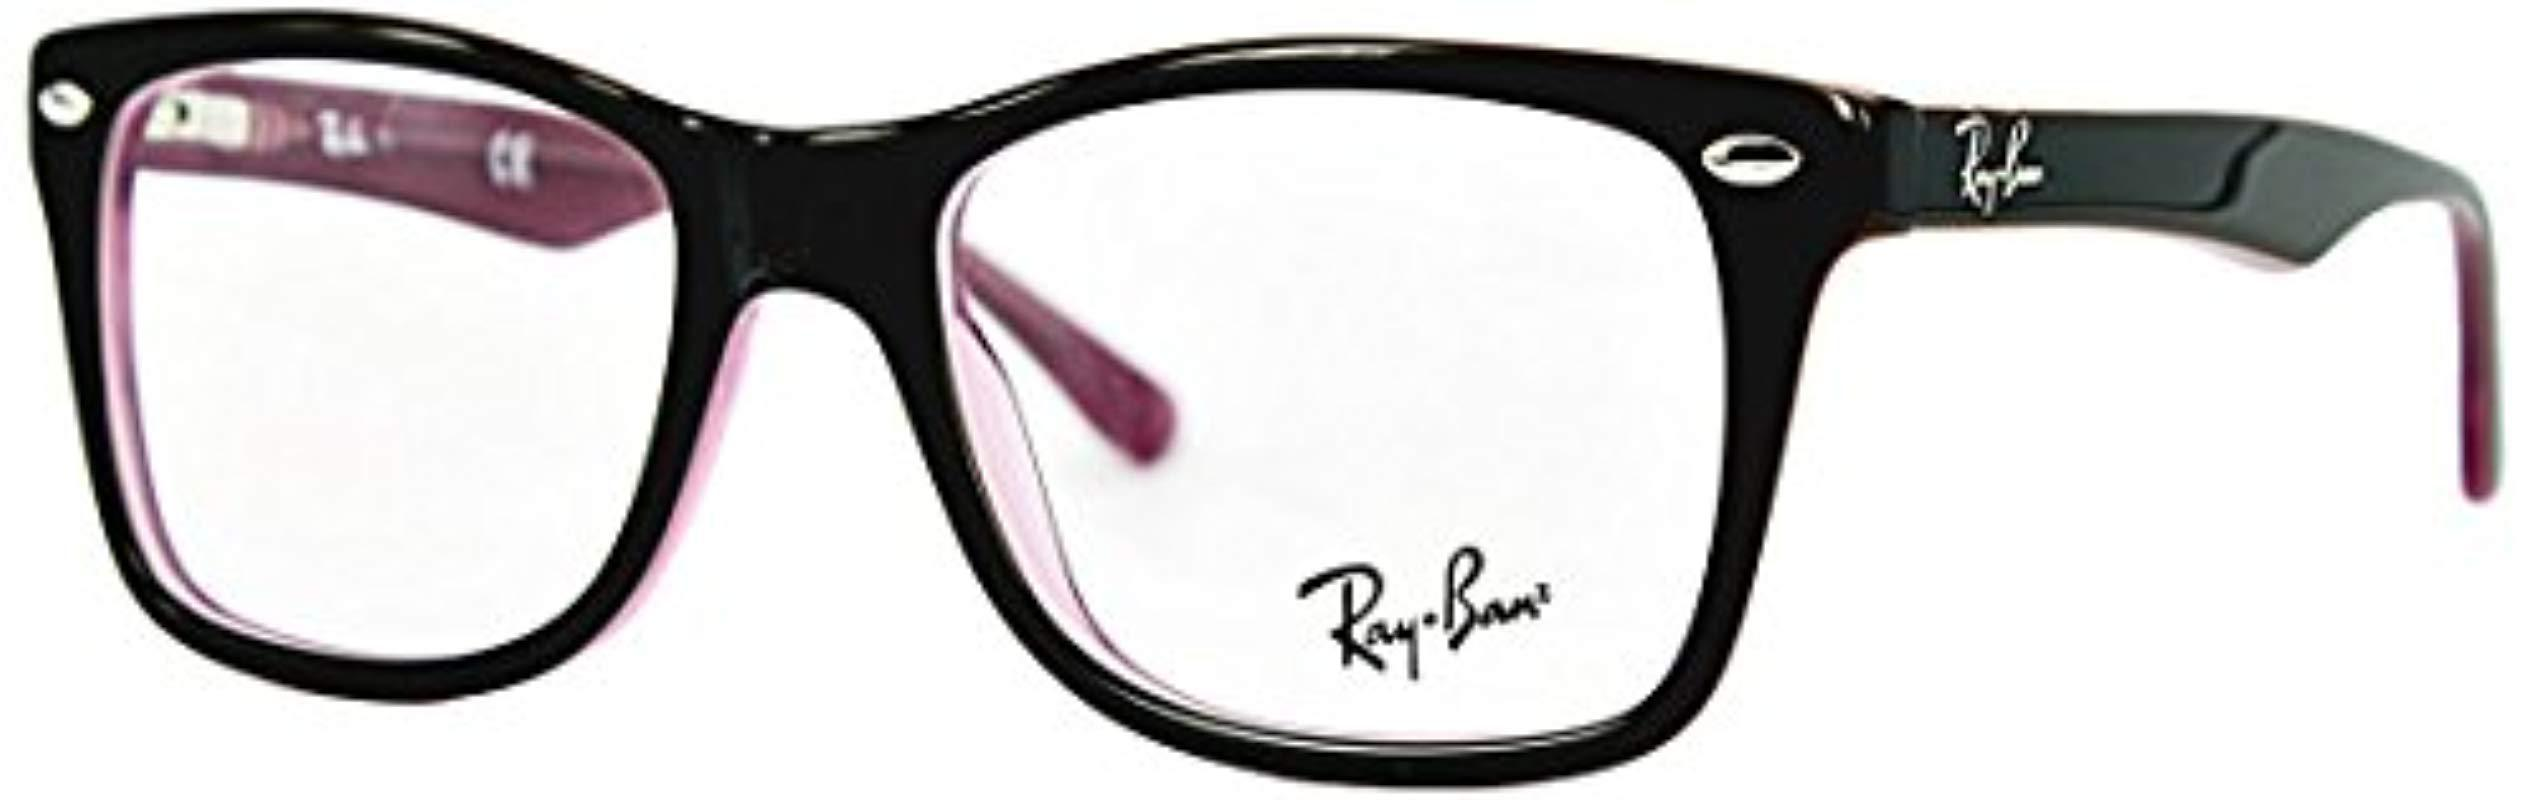 c2e00692ba Ray-Ban Rx5228 Glasses In Havana Brown Rx5228 5545 50 in Brown for ...